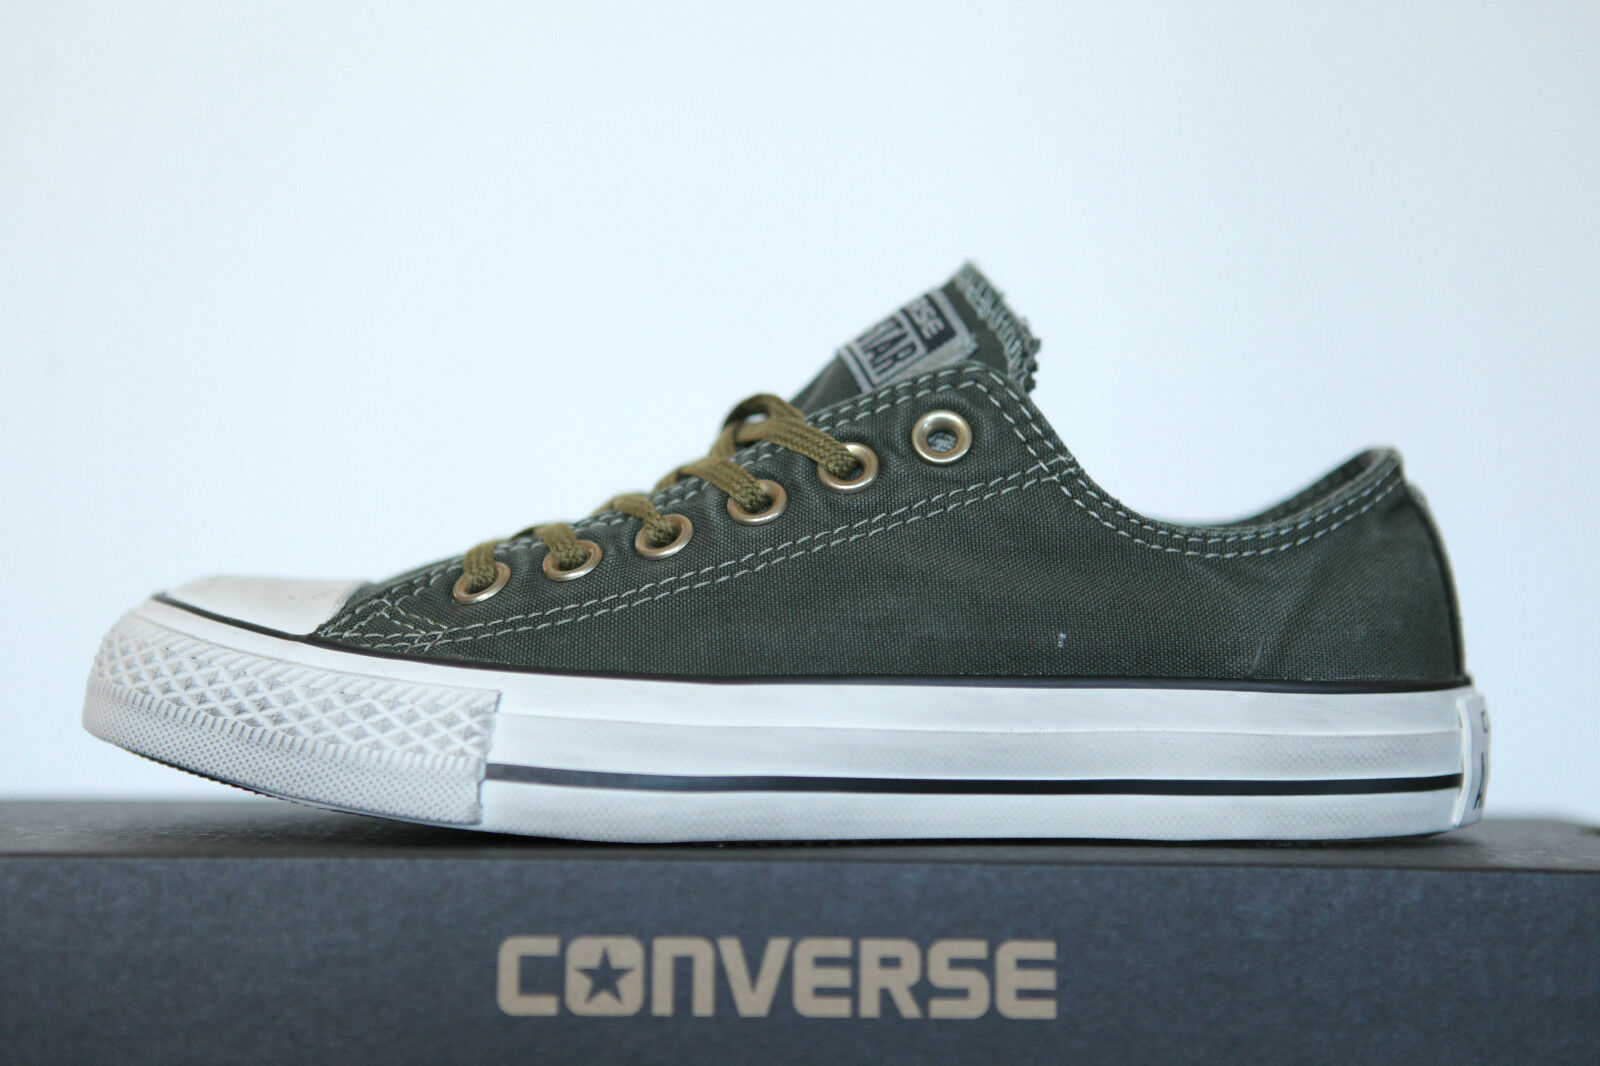 Neu Converse Chucks All Star Star Star low Well Worn Privet 142230c Gr.36 UK 3,5 273d91